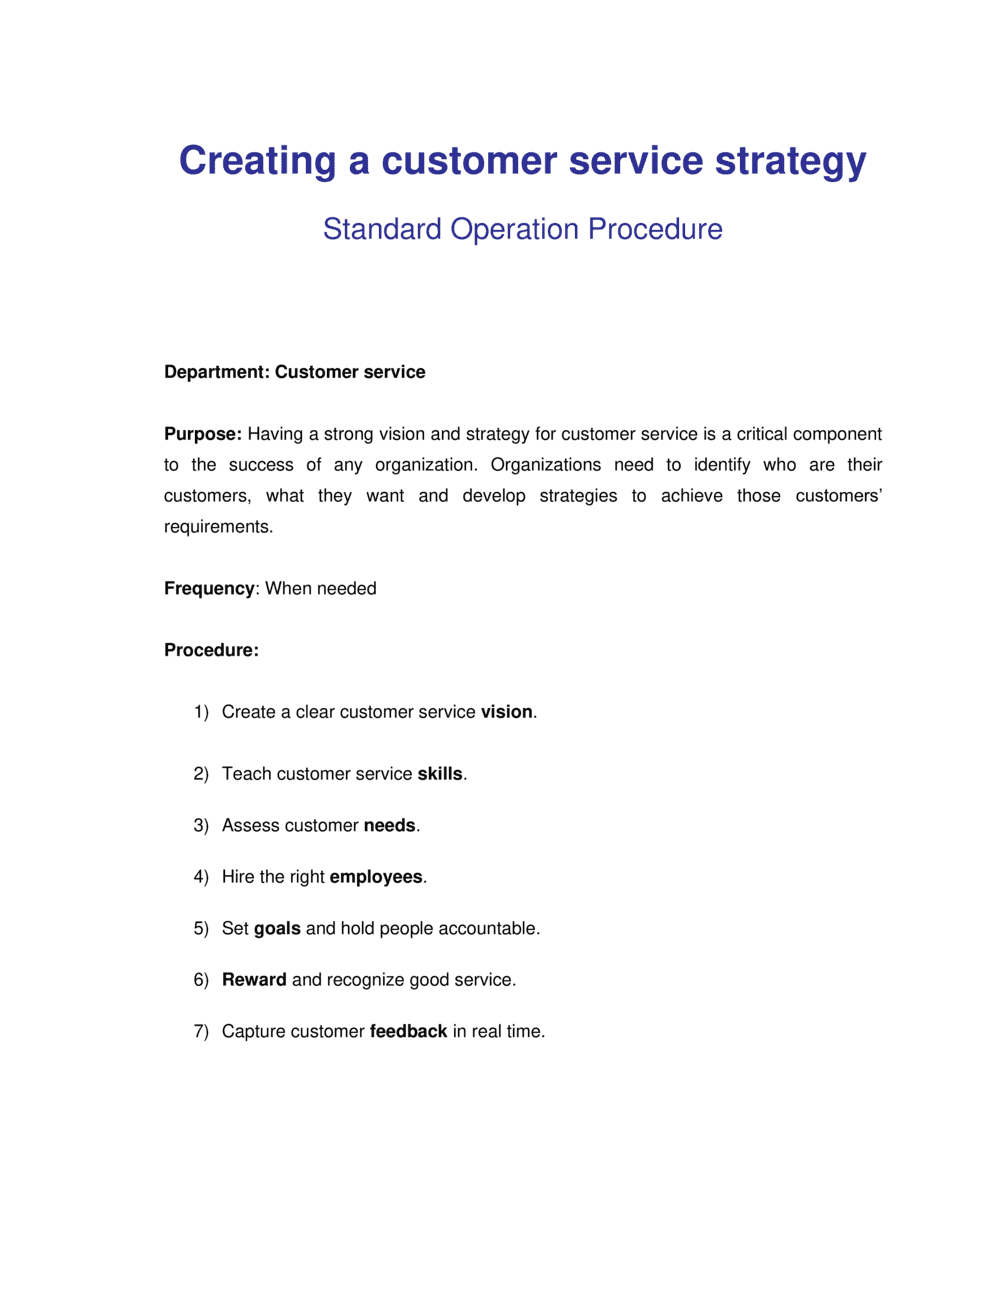 Business-in-a-Box's How to Creating a Customer Service Strategy